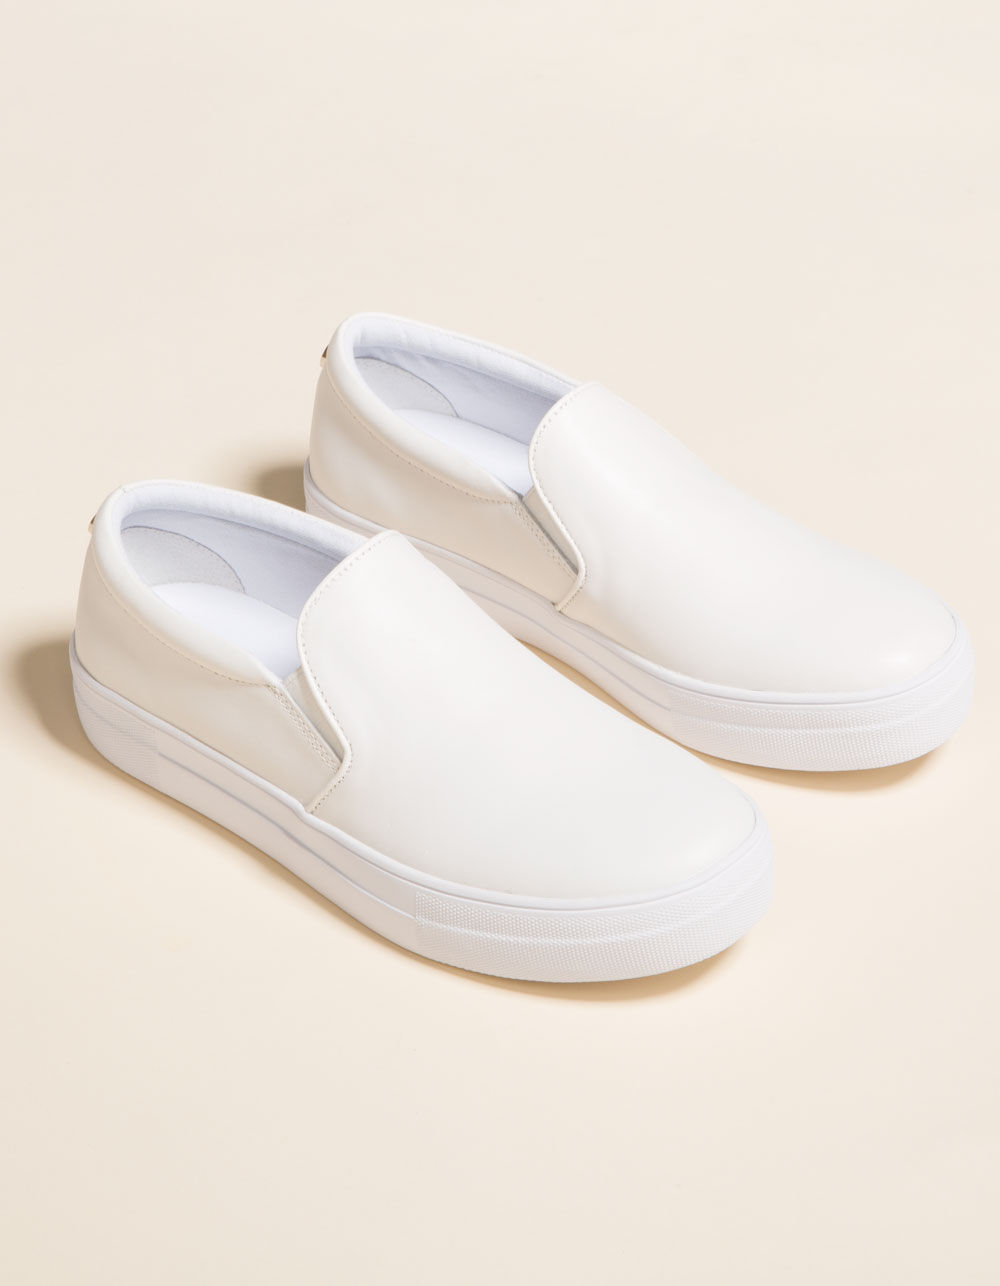 STEVE MADDEN Gills White Leather Shoes